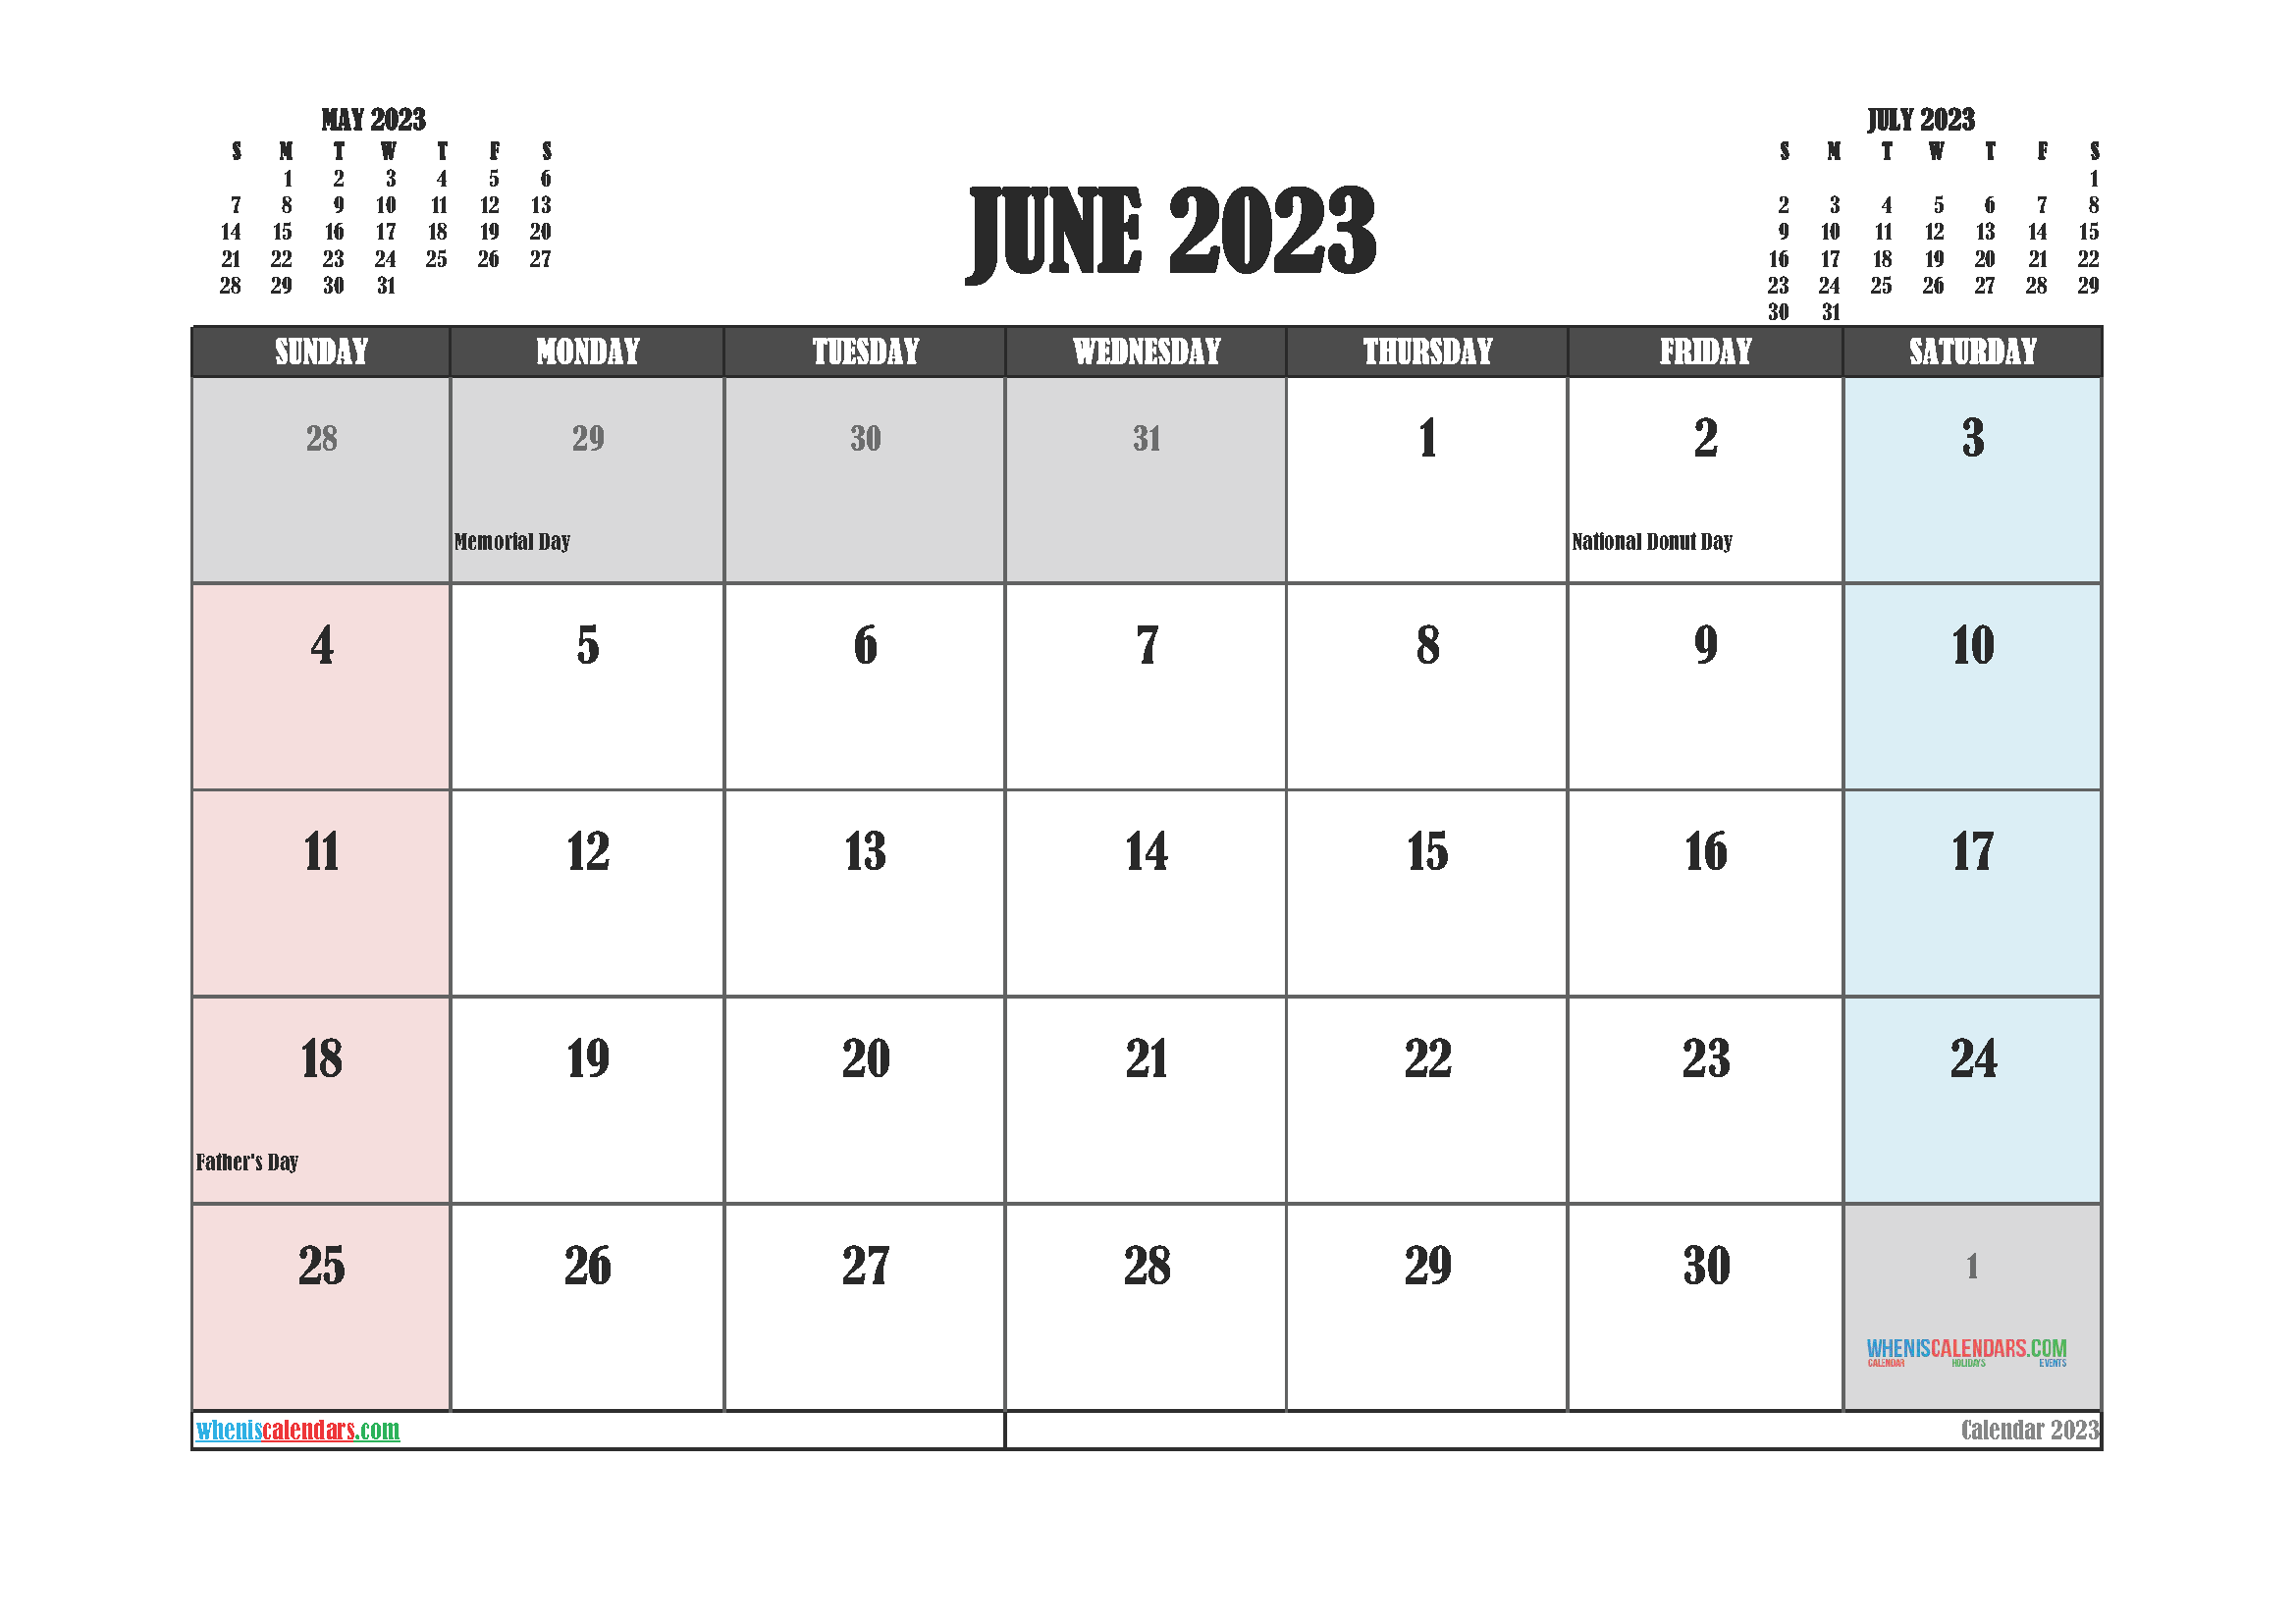 June 2023 Calendar Printable For Free